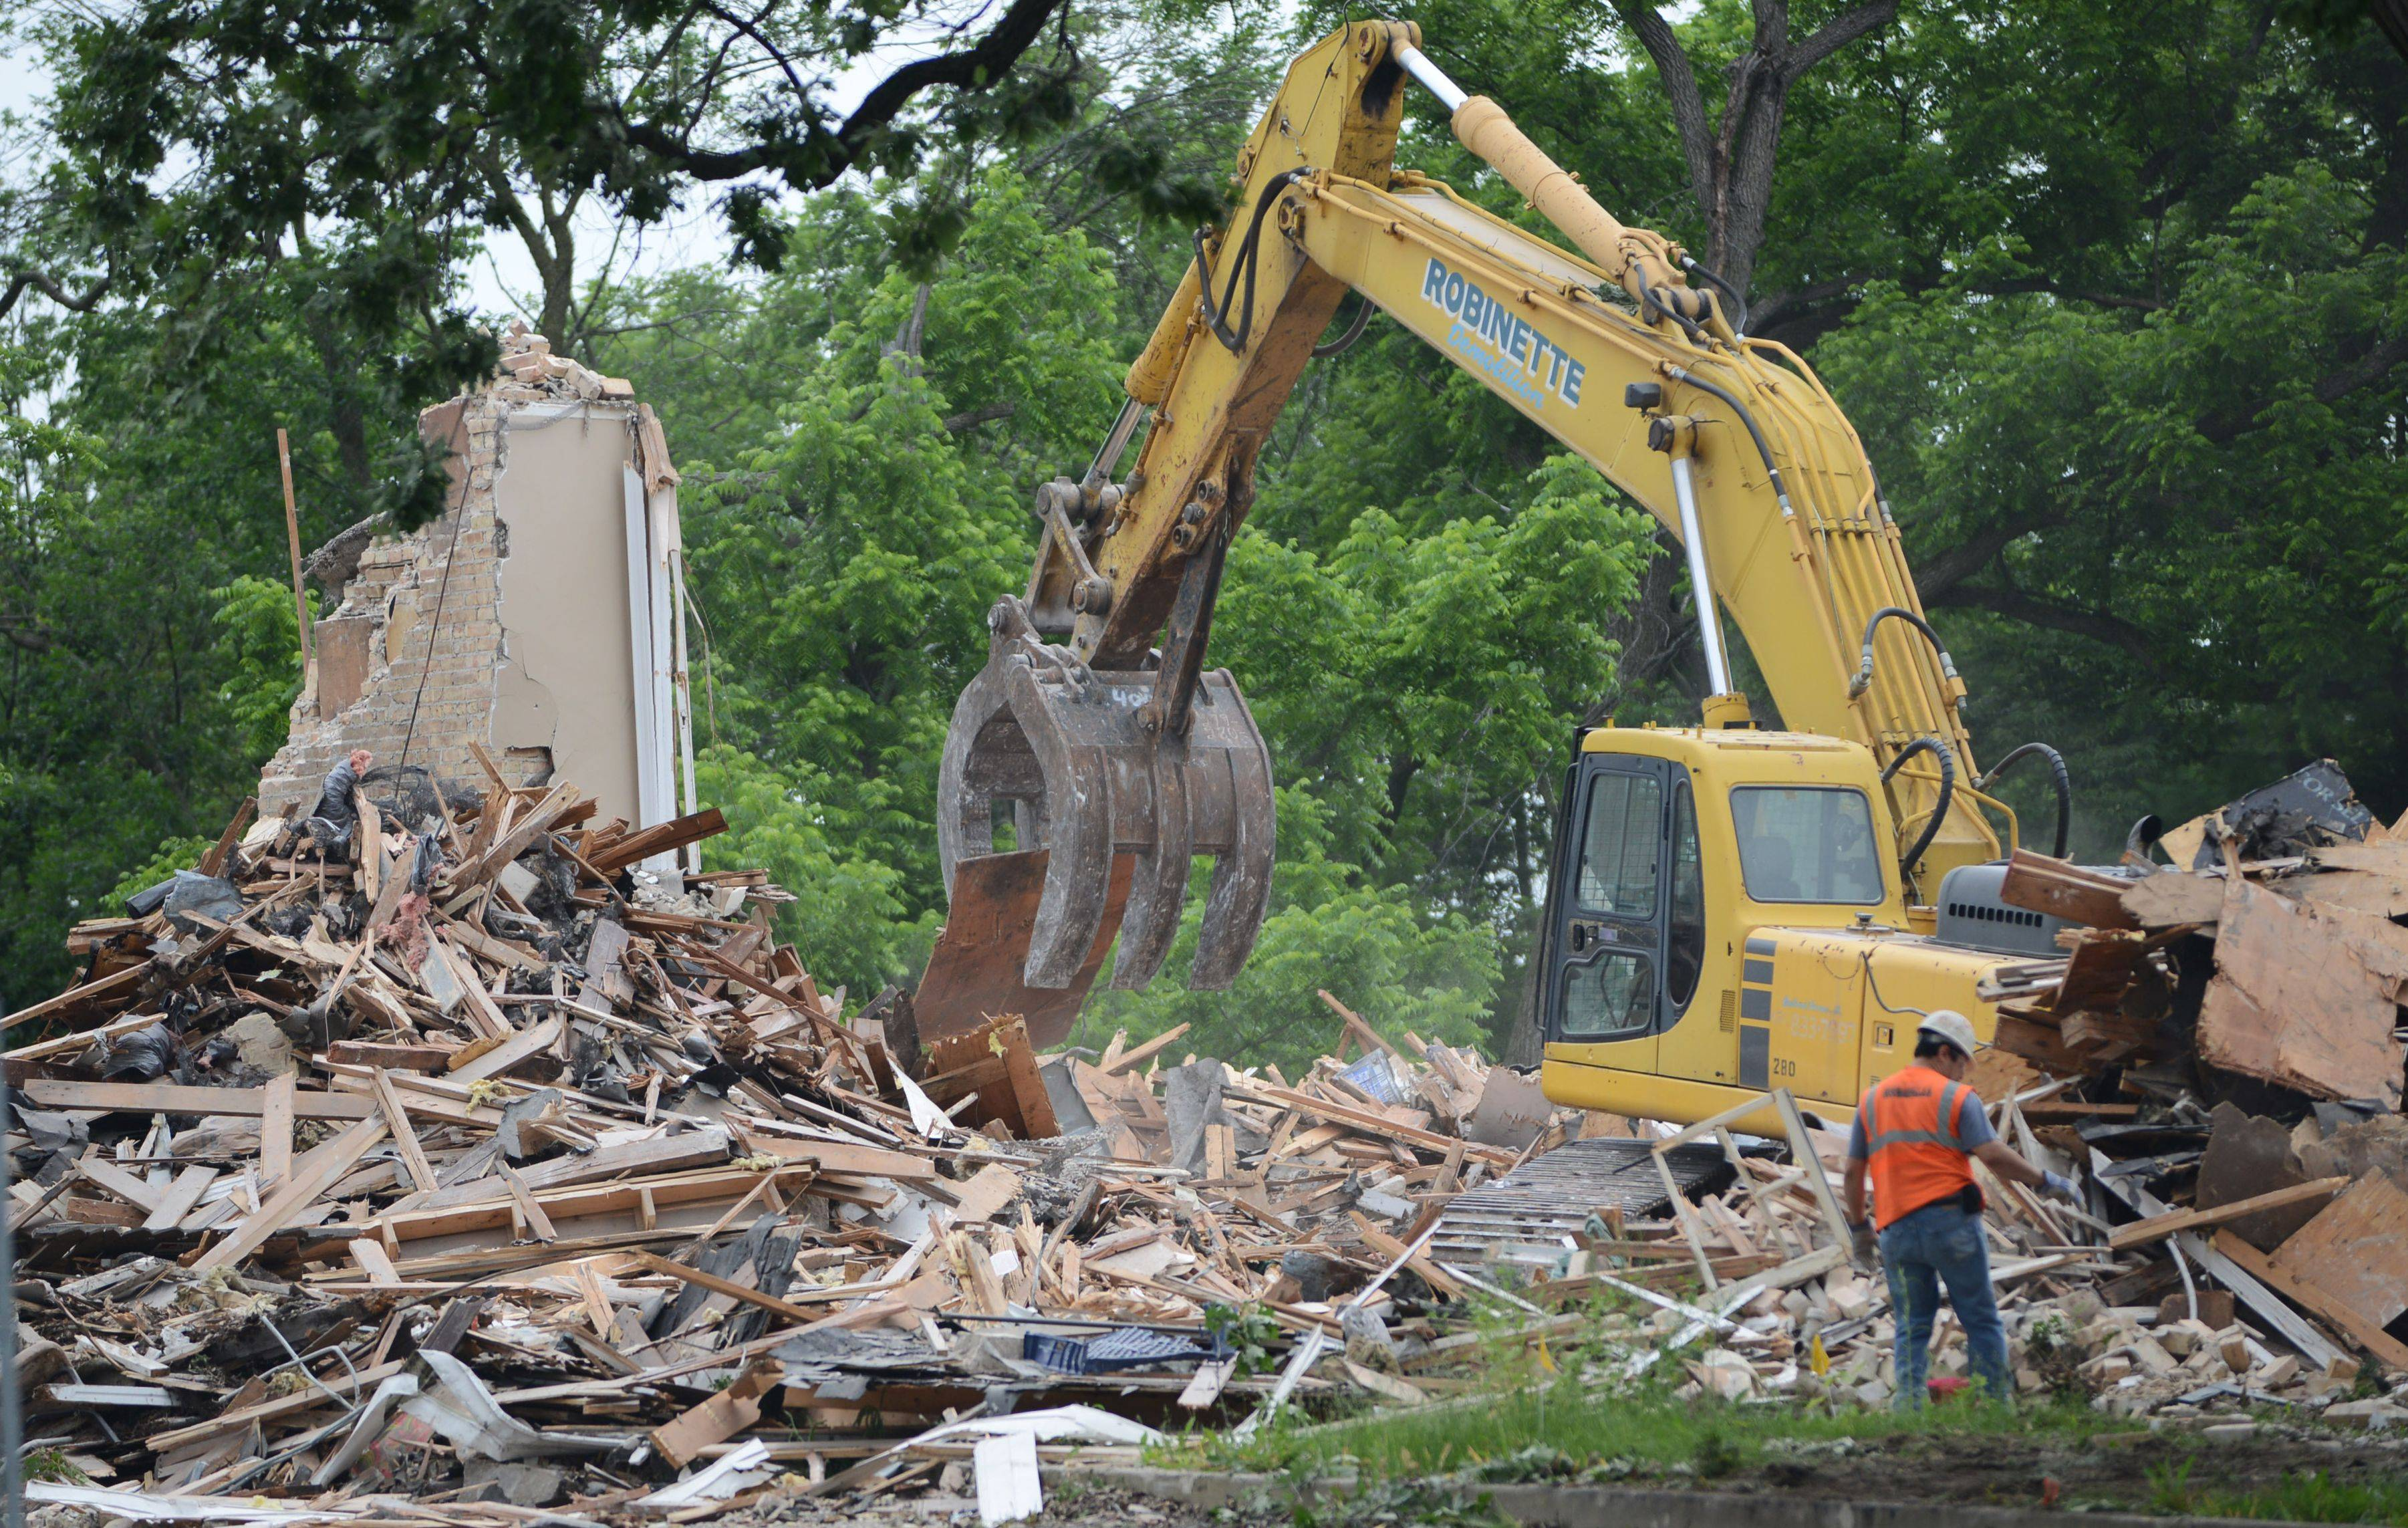 The former Country Squire restaurant in Grayslake is being torn down this week. There are no immediate plans for the property.